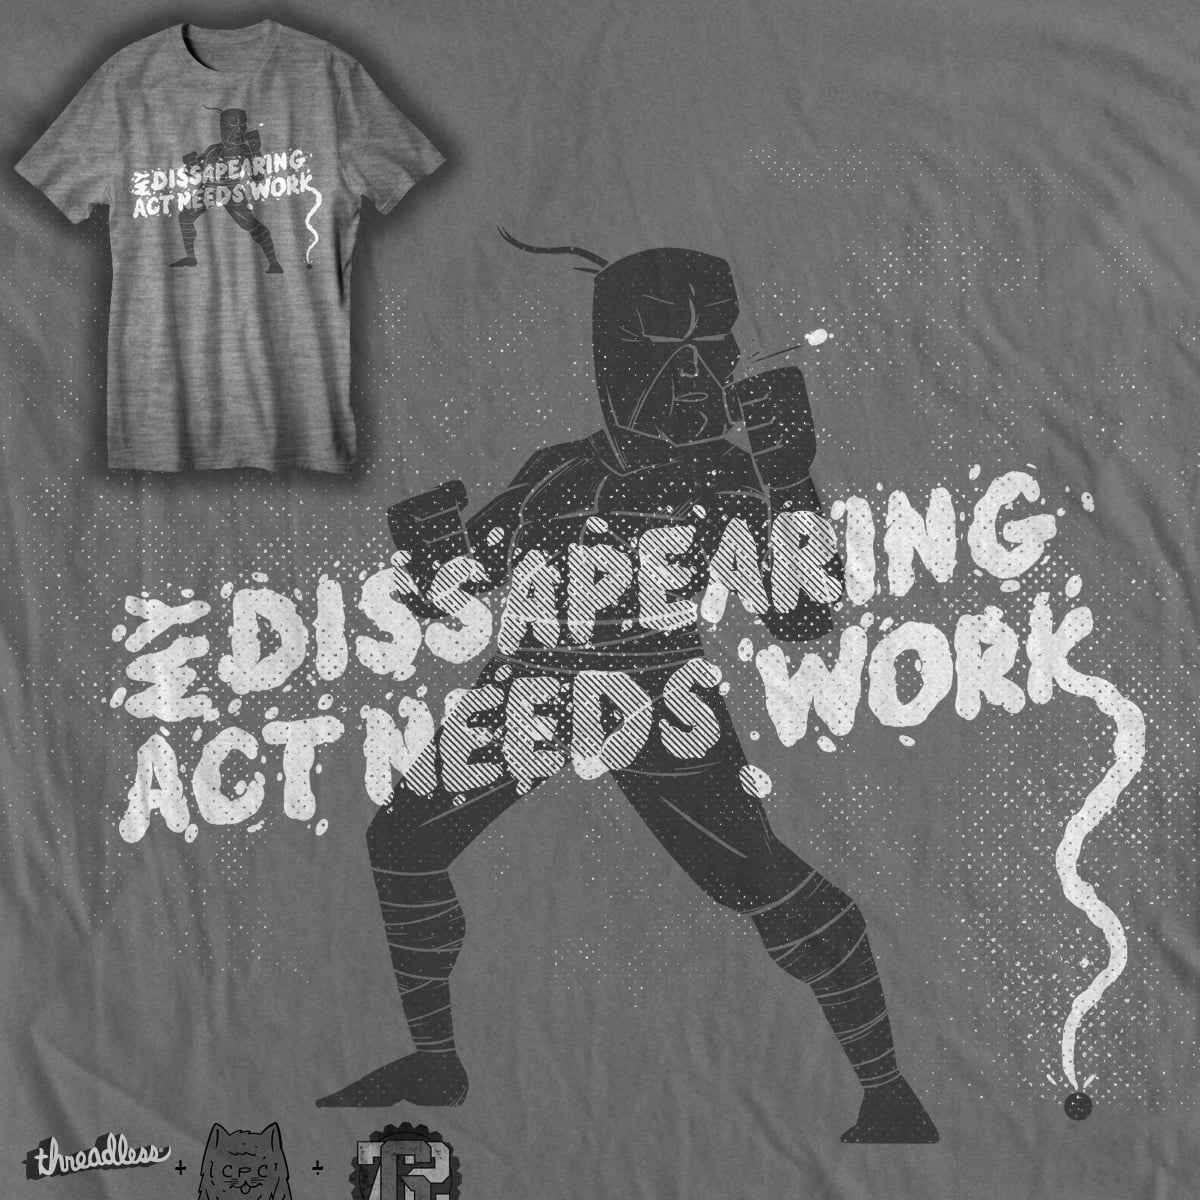 my disappearing act needs work by chuckpcomics and goliath72 on Threadless